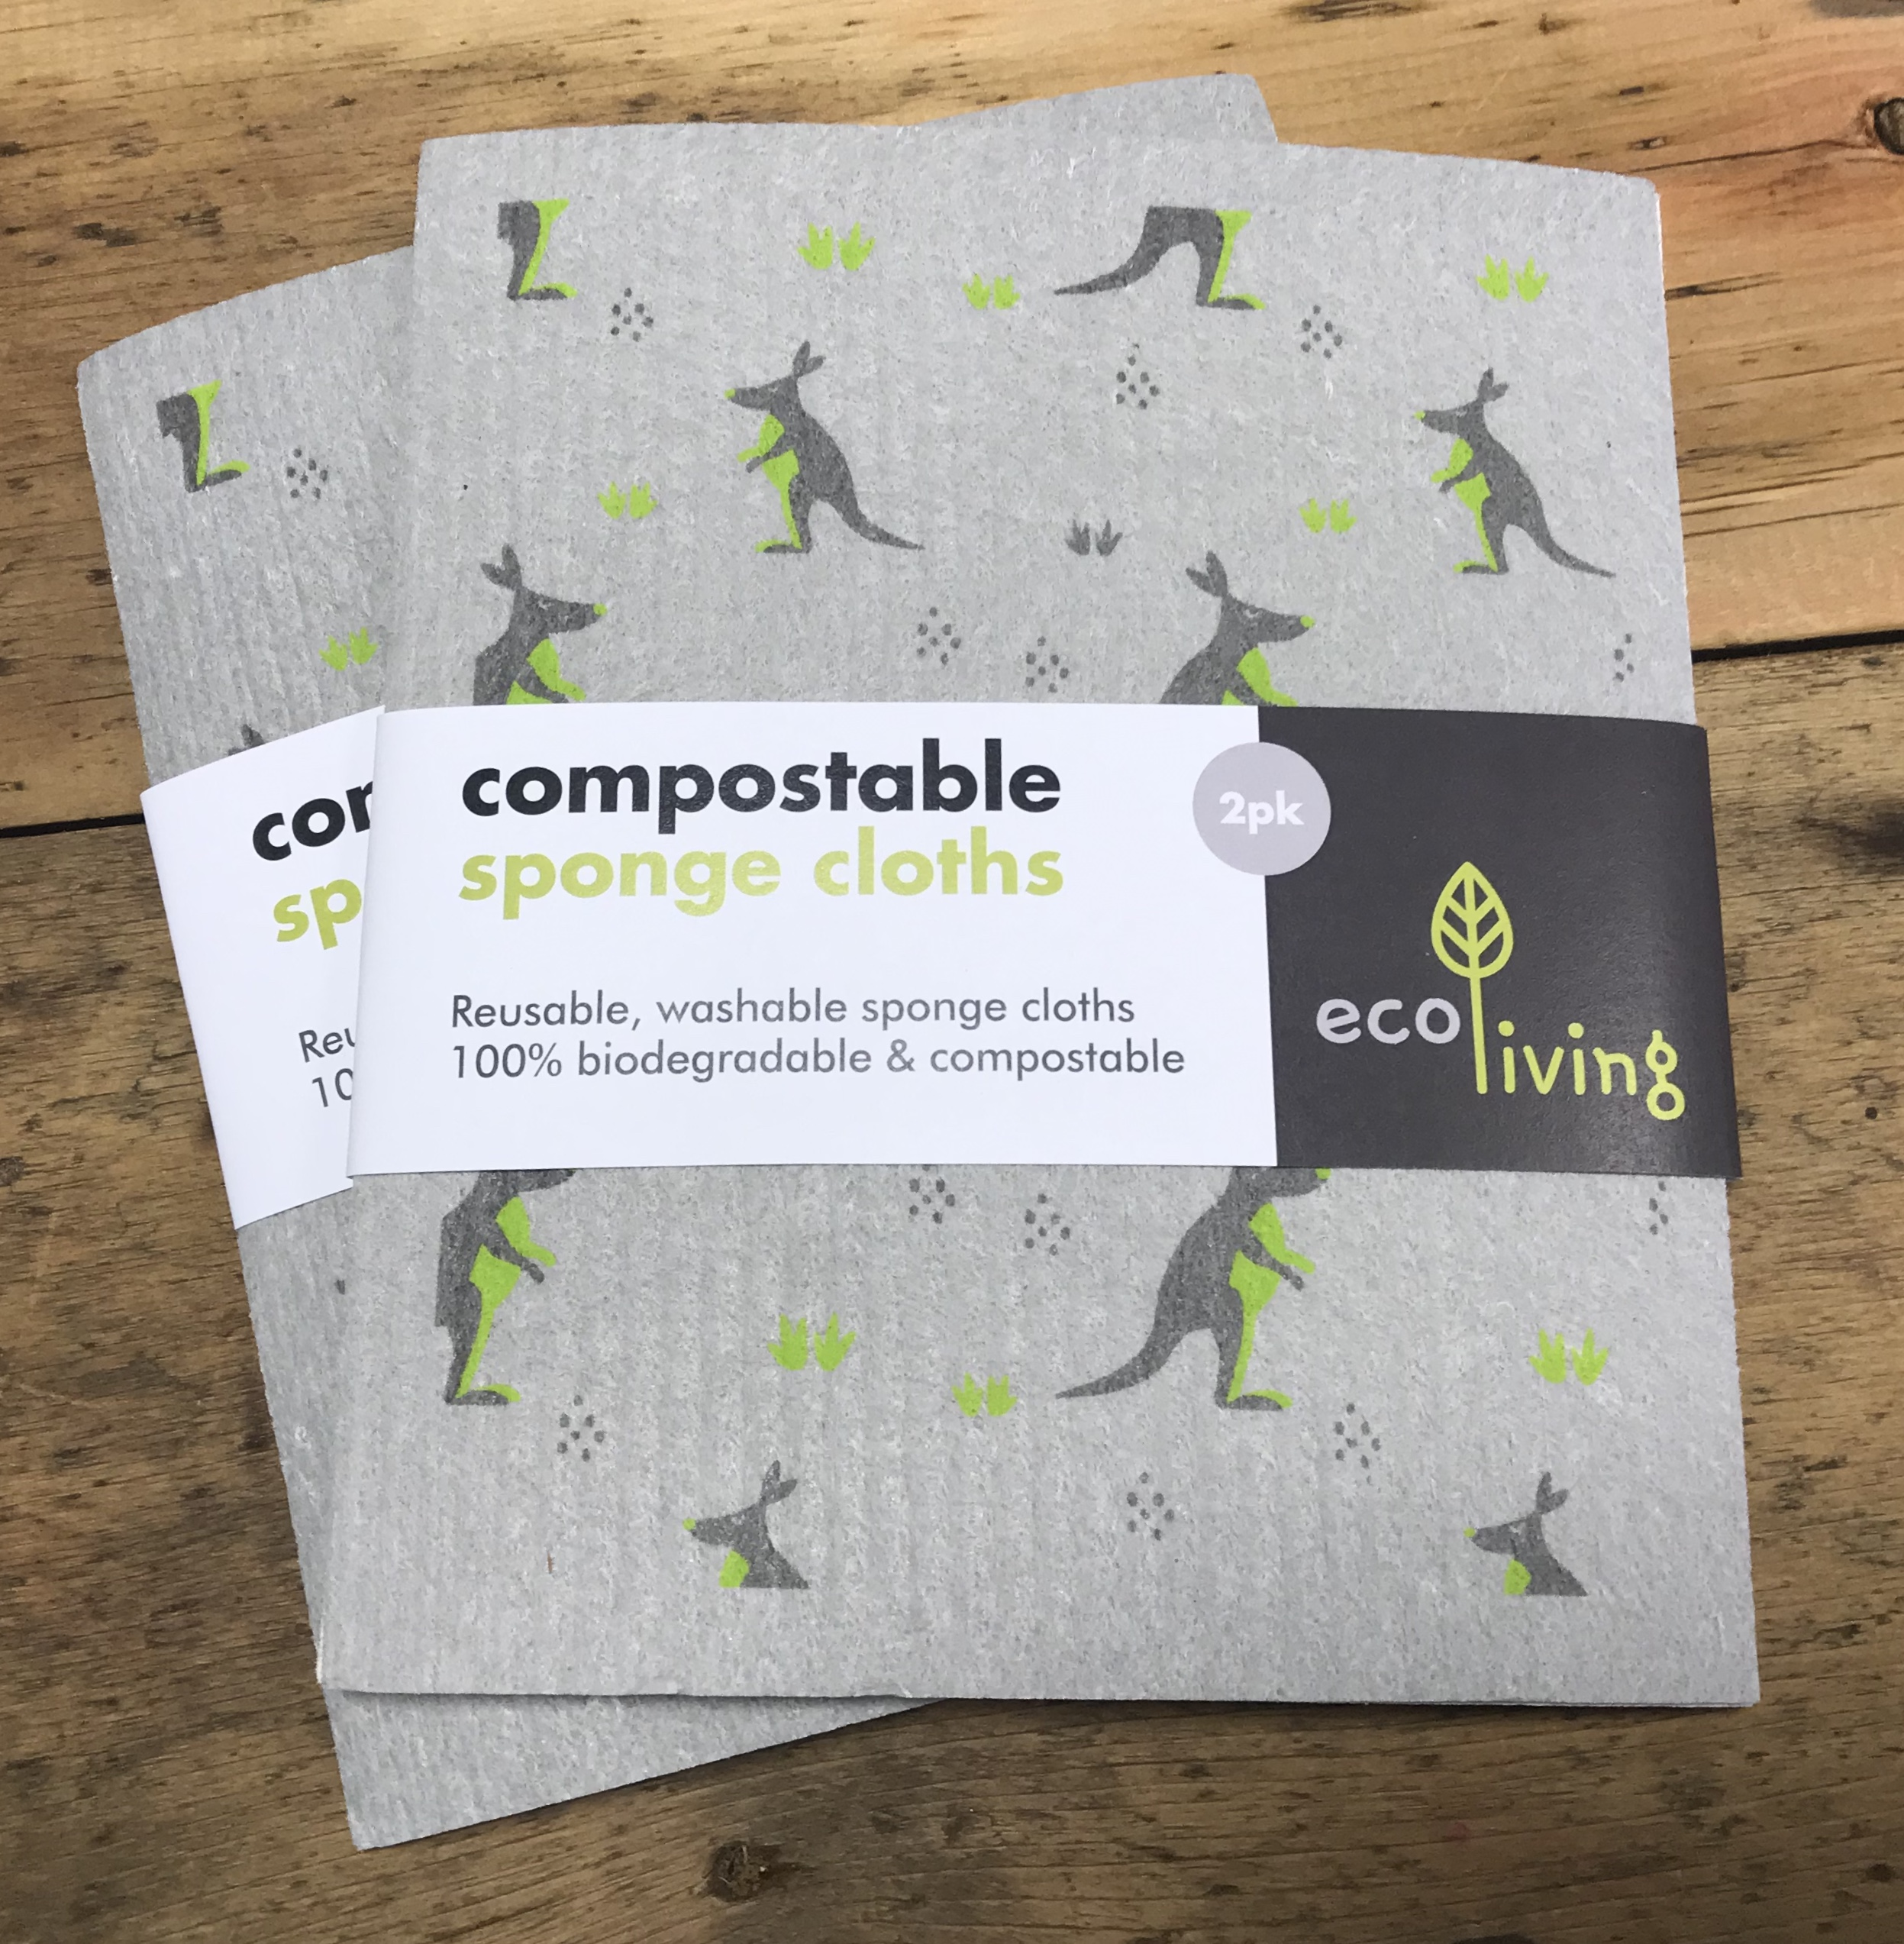 Compostable Sponge Cleaning Clothes - 2 Pack